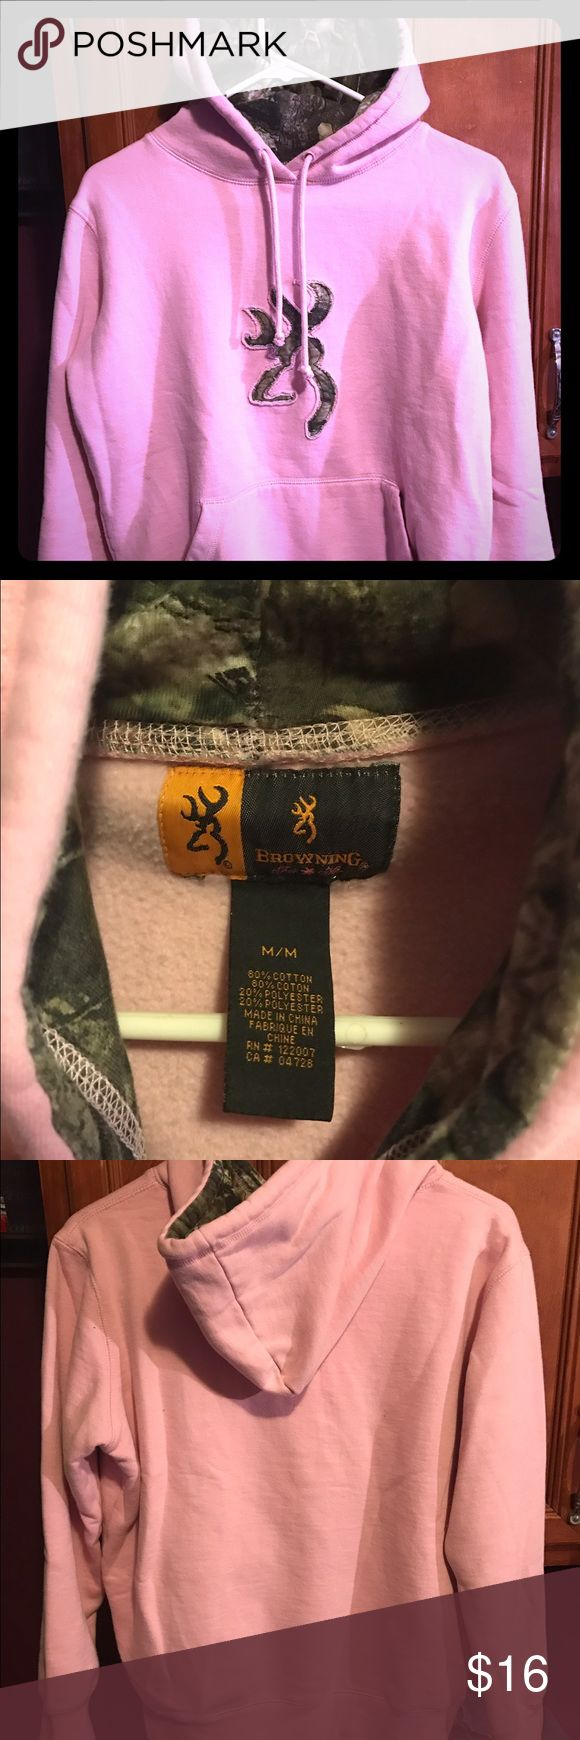 Cute Light Pink Browning Symbol Hoodie Calling all cute country girls! Browning brand pink pullover hoodie. Camo patterned inside of hood and deer symbol on front. Ladies size medium, super comfortable and warm. Cute addition to any closet. Good, clean pre loved condition. Browning Sweaters Cardigans